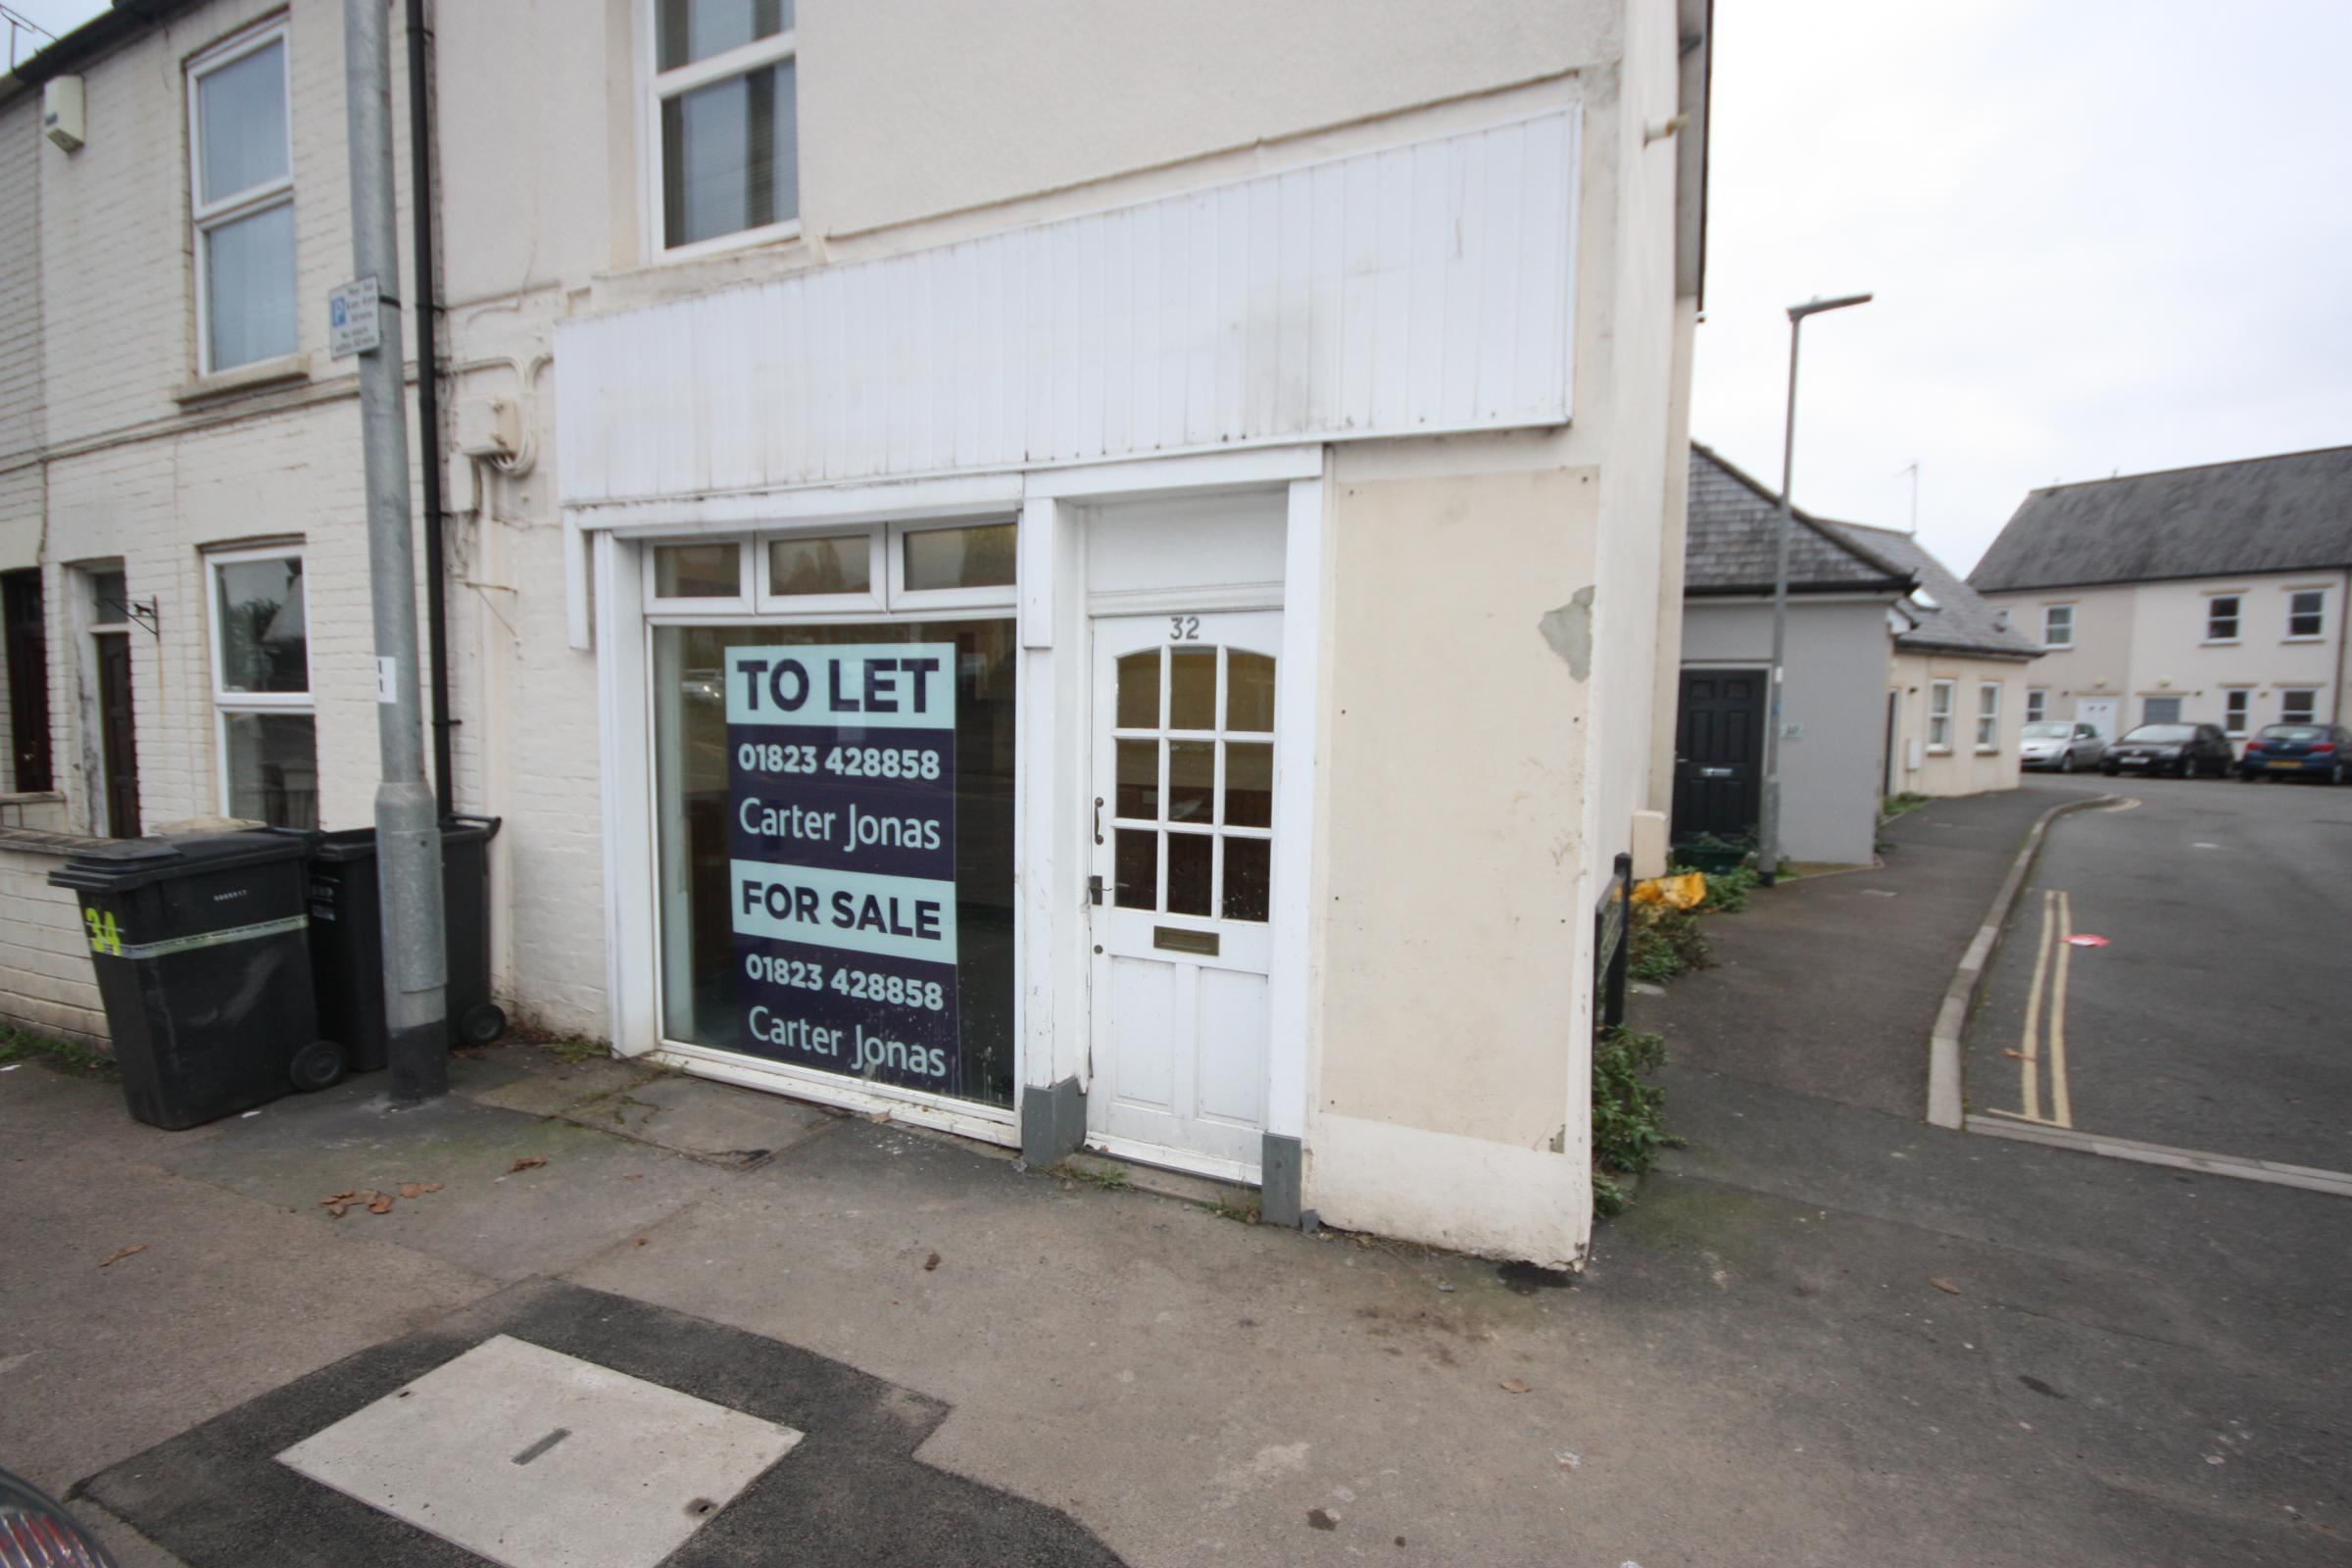 UP FOR RENT: The shop premises, in Kingston Road